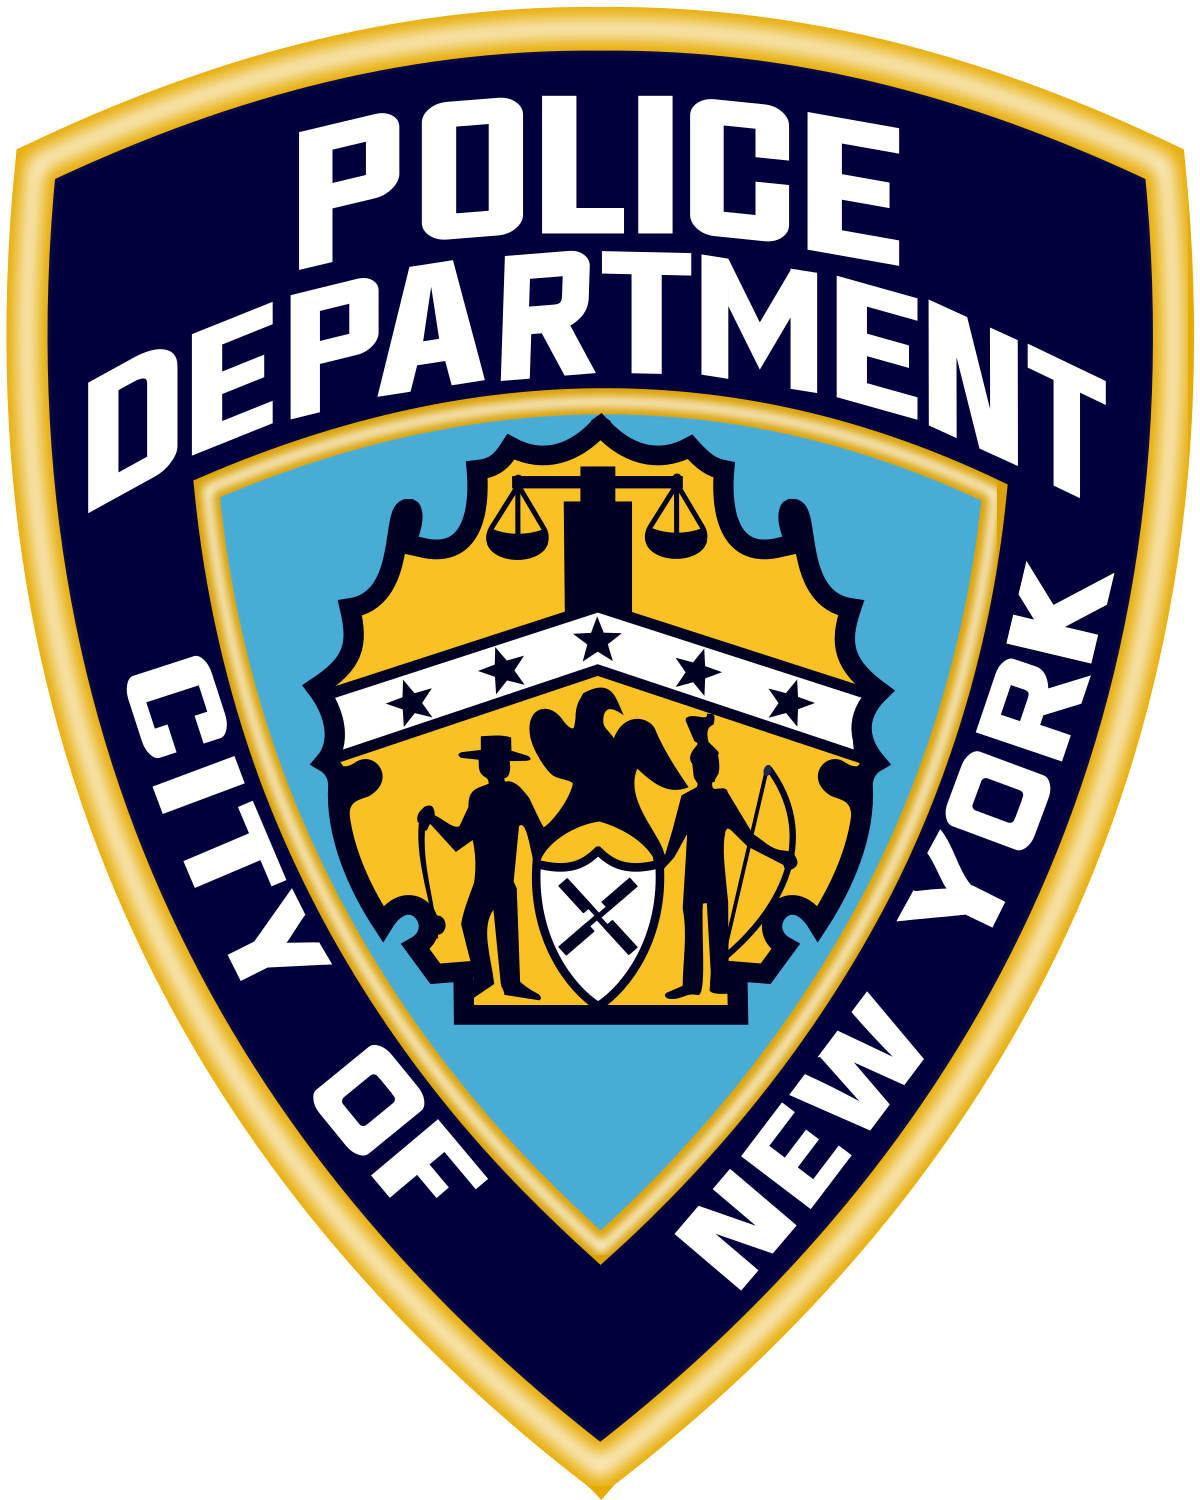 Nypd badge png. New york city police